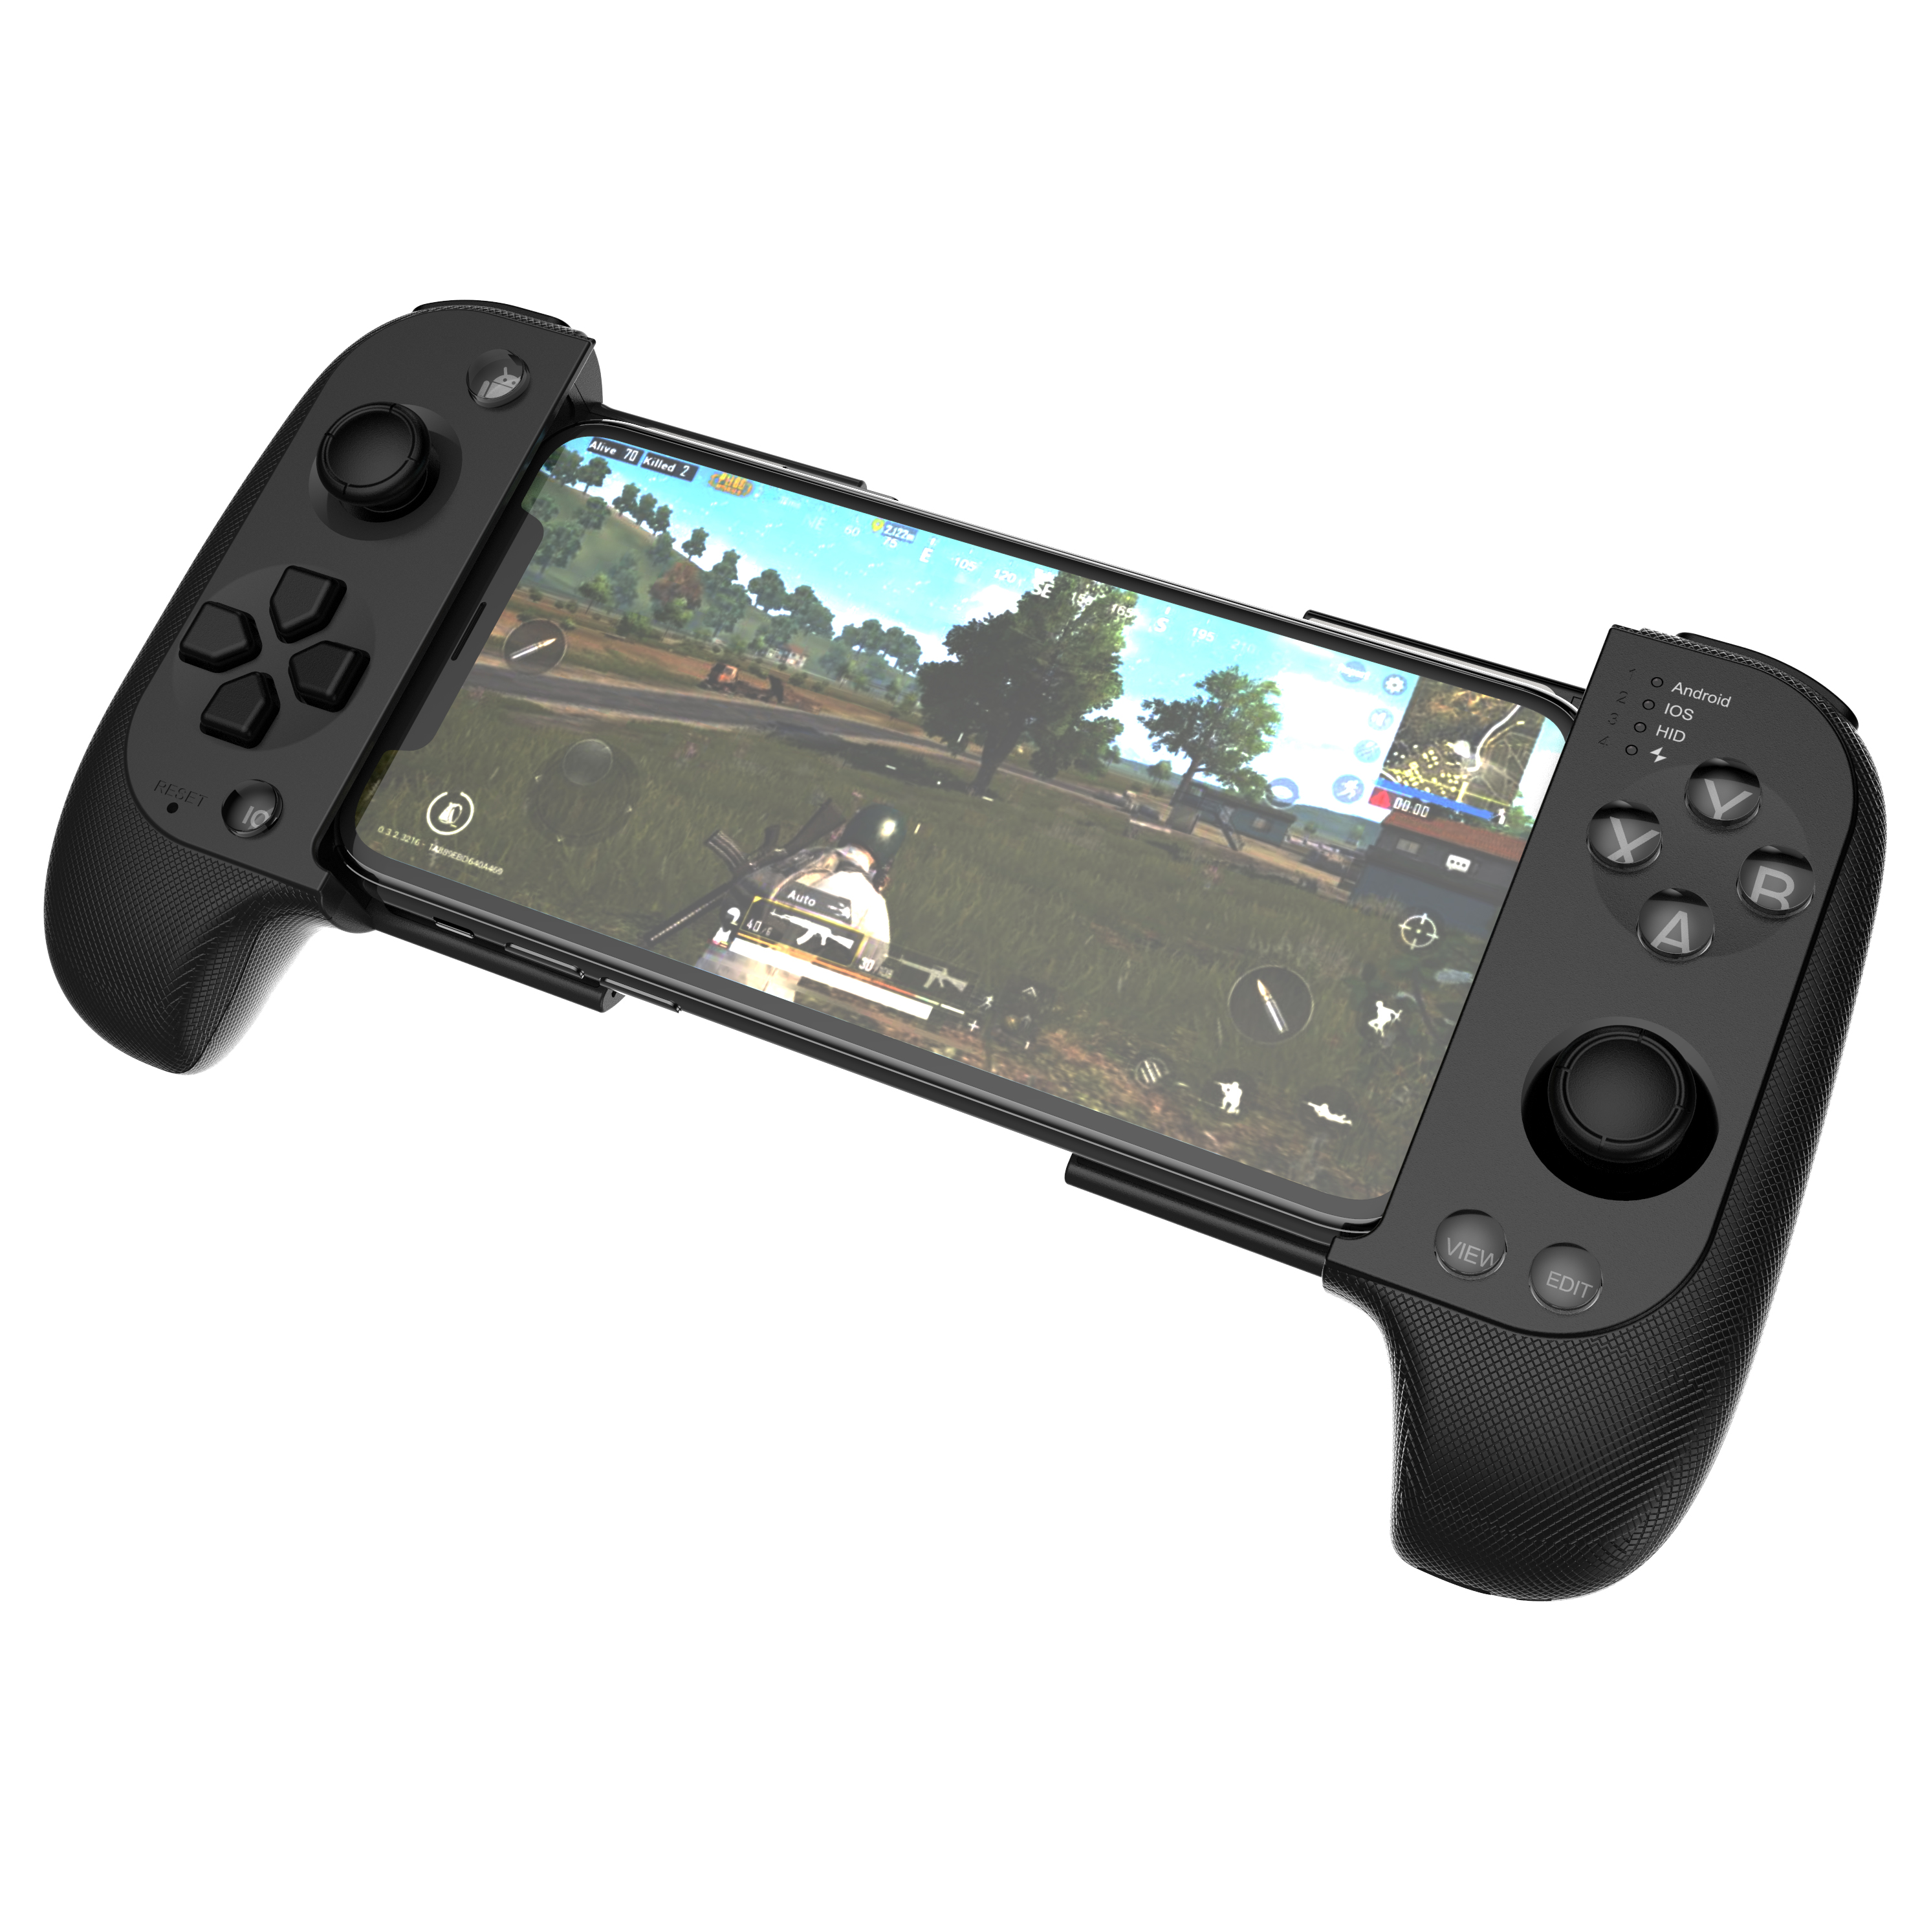 Saitake brand <strong>bluetooth</strong> wireless mobile game <strong>controller</strong> <strong>android</strong> gamepad for PUBG joystick &amp; game <strong>controller</strong>